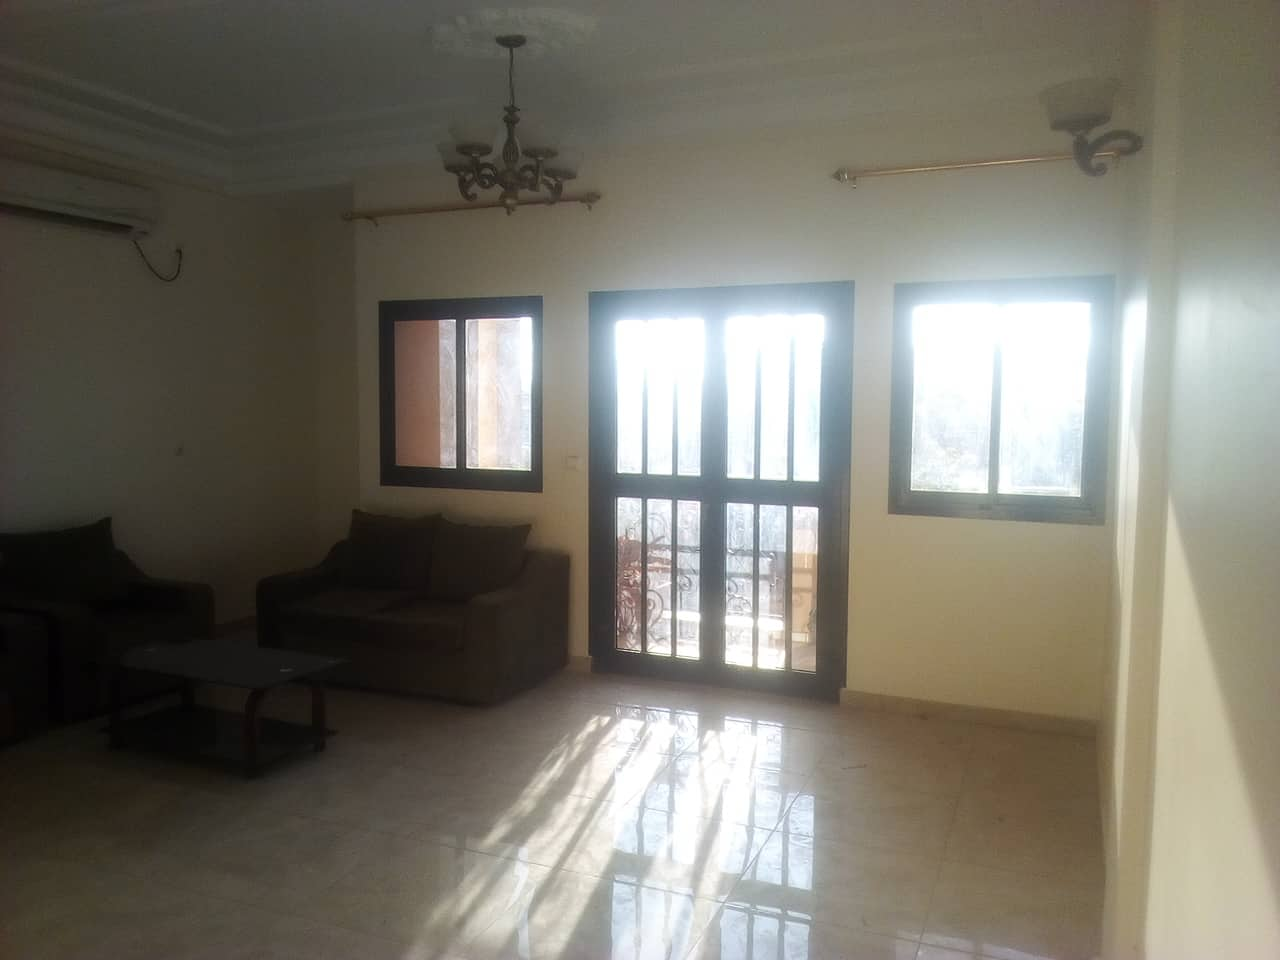 Apartment to rent - Yaoundé, Ngousso, fabrique - 1 living room(s), 3 bedroom(s), 3 bathroom(s) - 300 000 FCFA / month